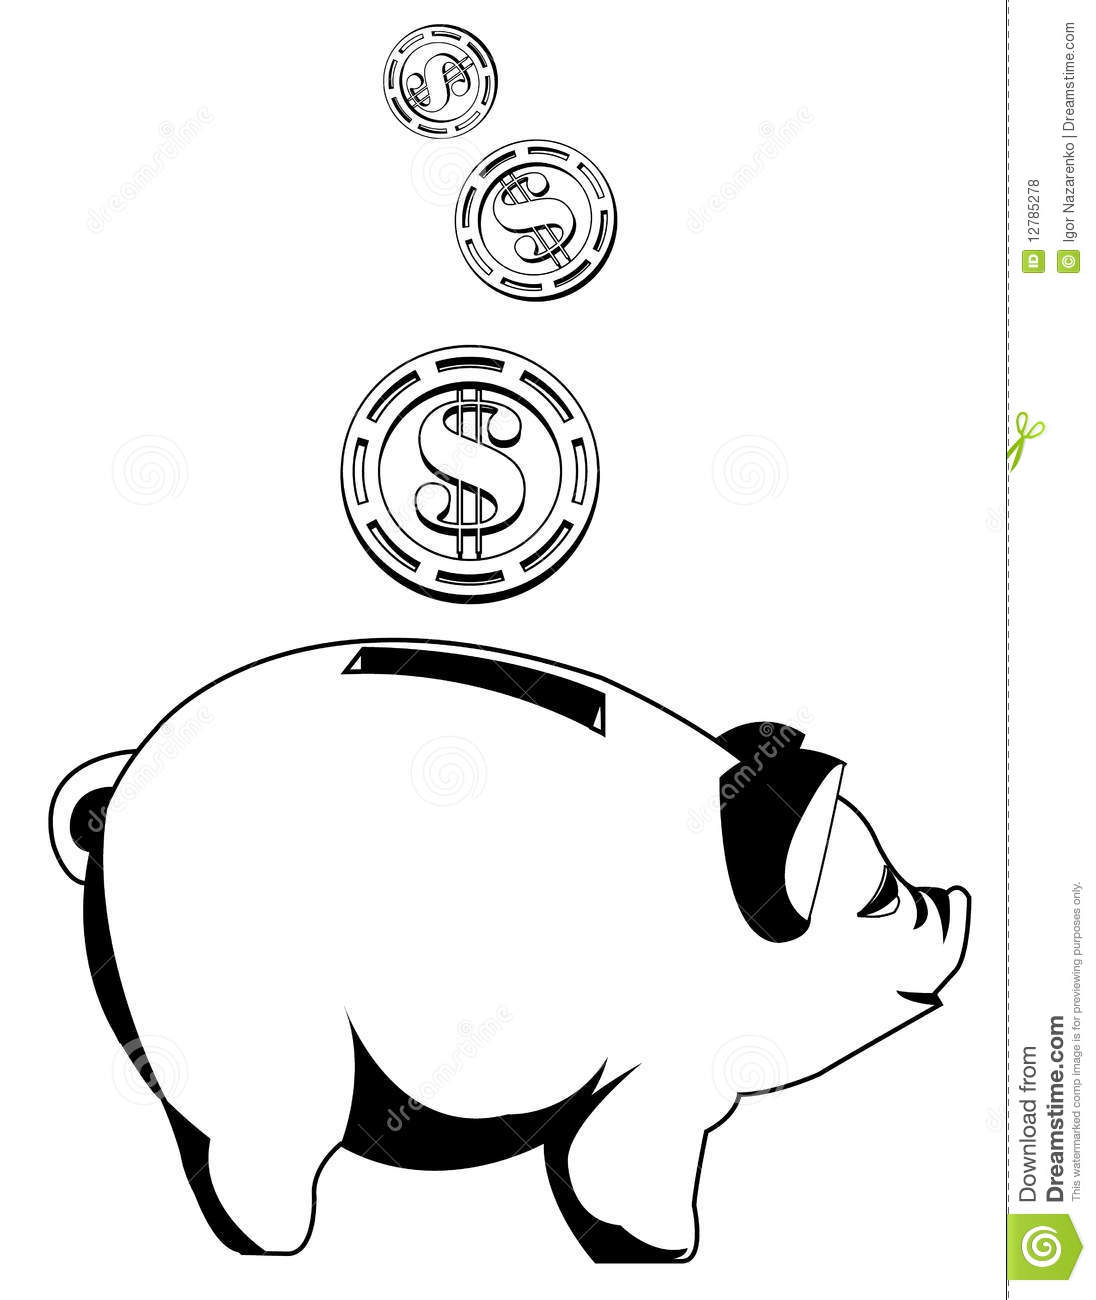 Free piggy bank clipart black and white jpg freeuse stock Black And White Piggy Bank With Coins Royalty Free Stock Photos ... jpg freeuse stock